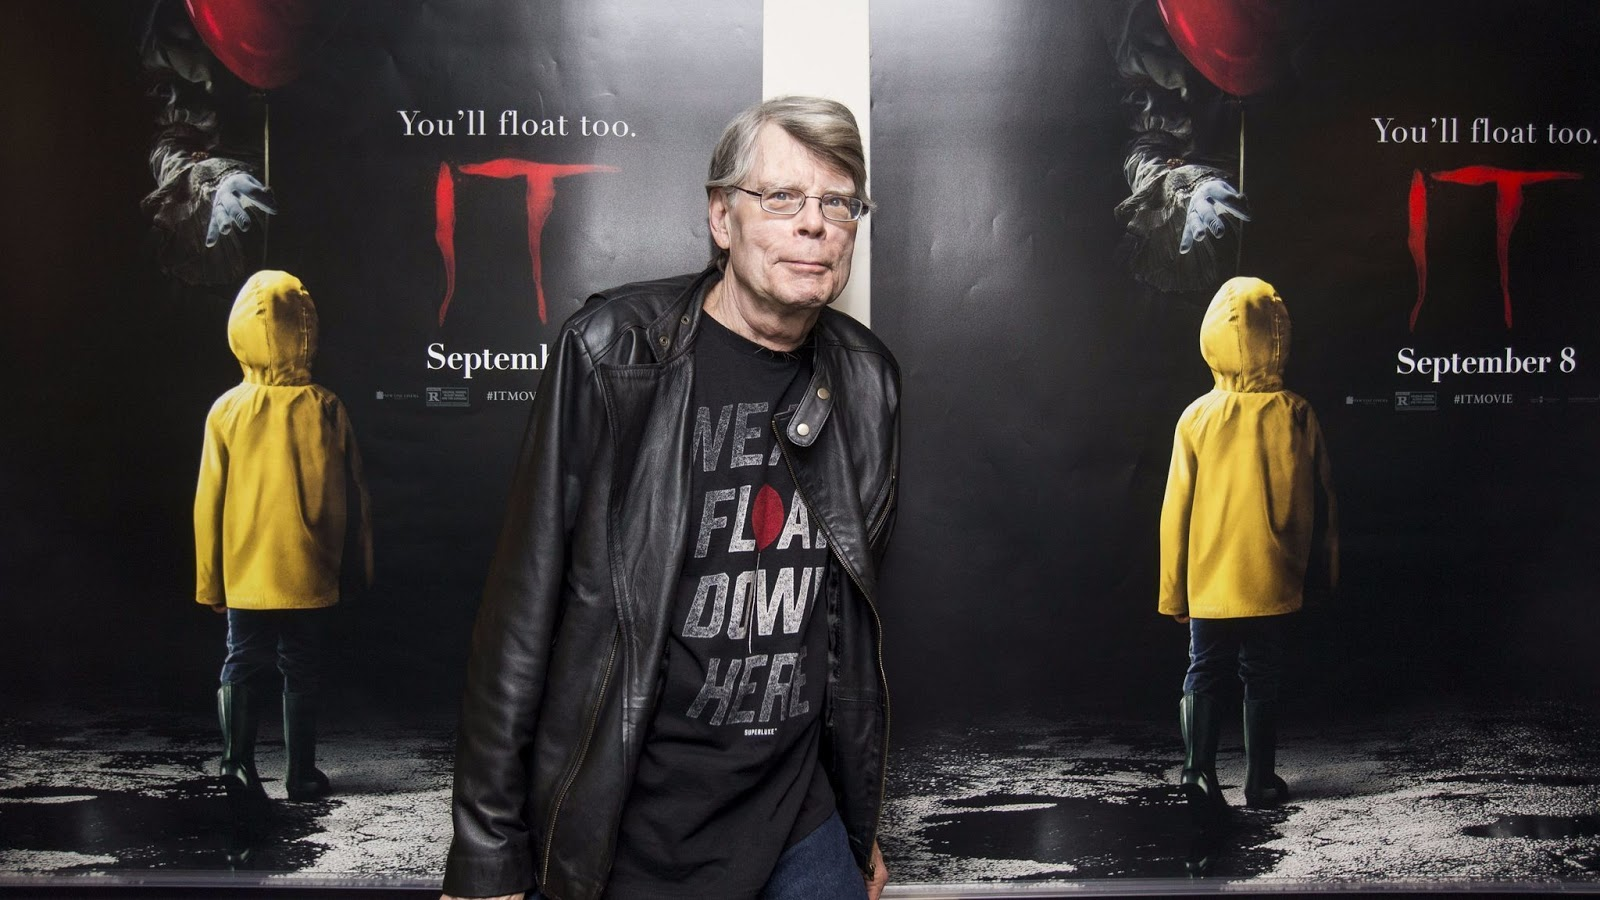 El Ultimo Libro De Stephen King Acoso Textual Eso It De Stephen King Terrorífica